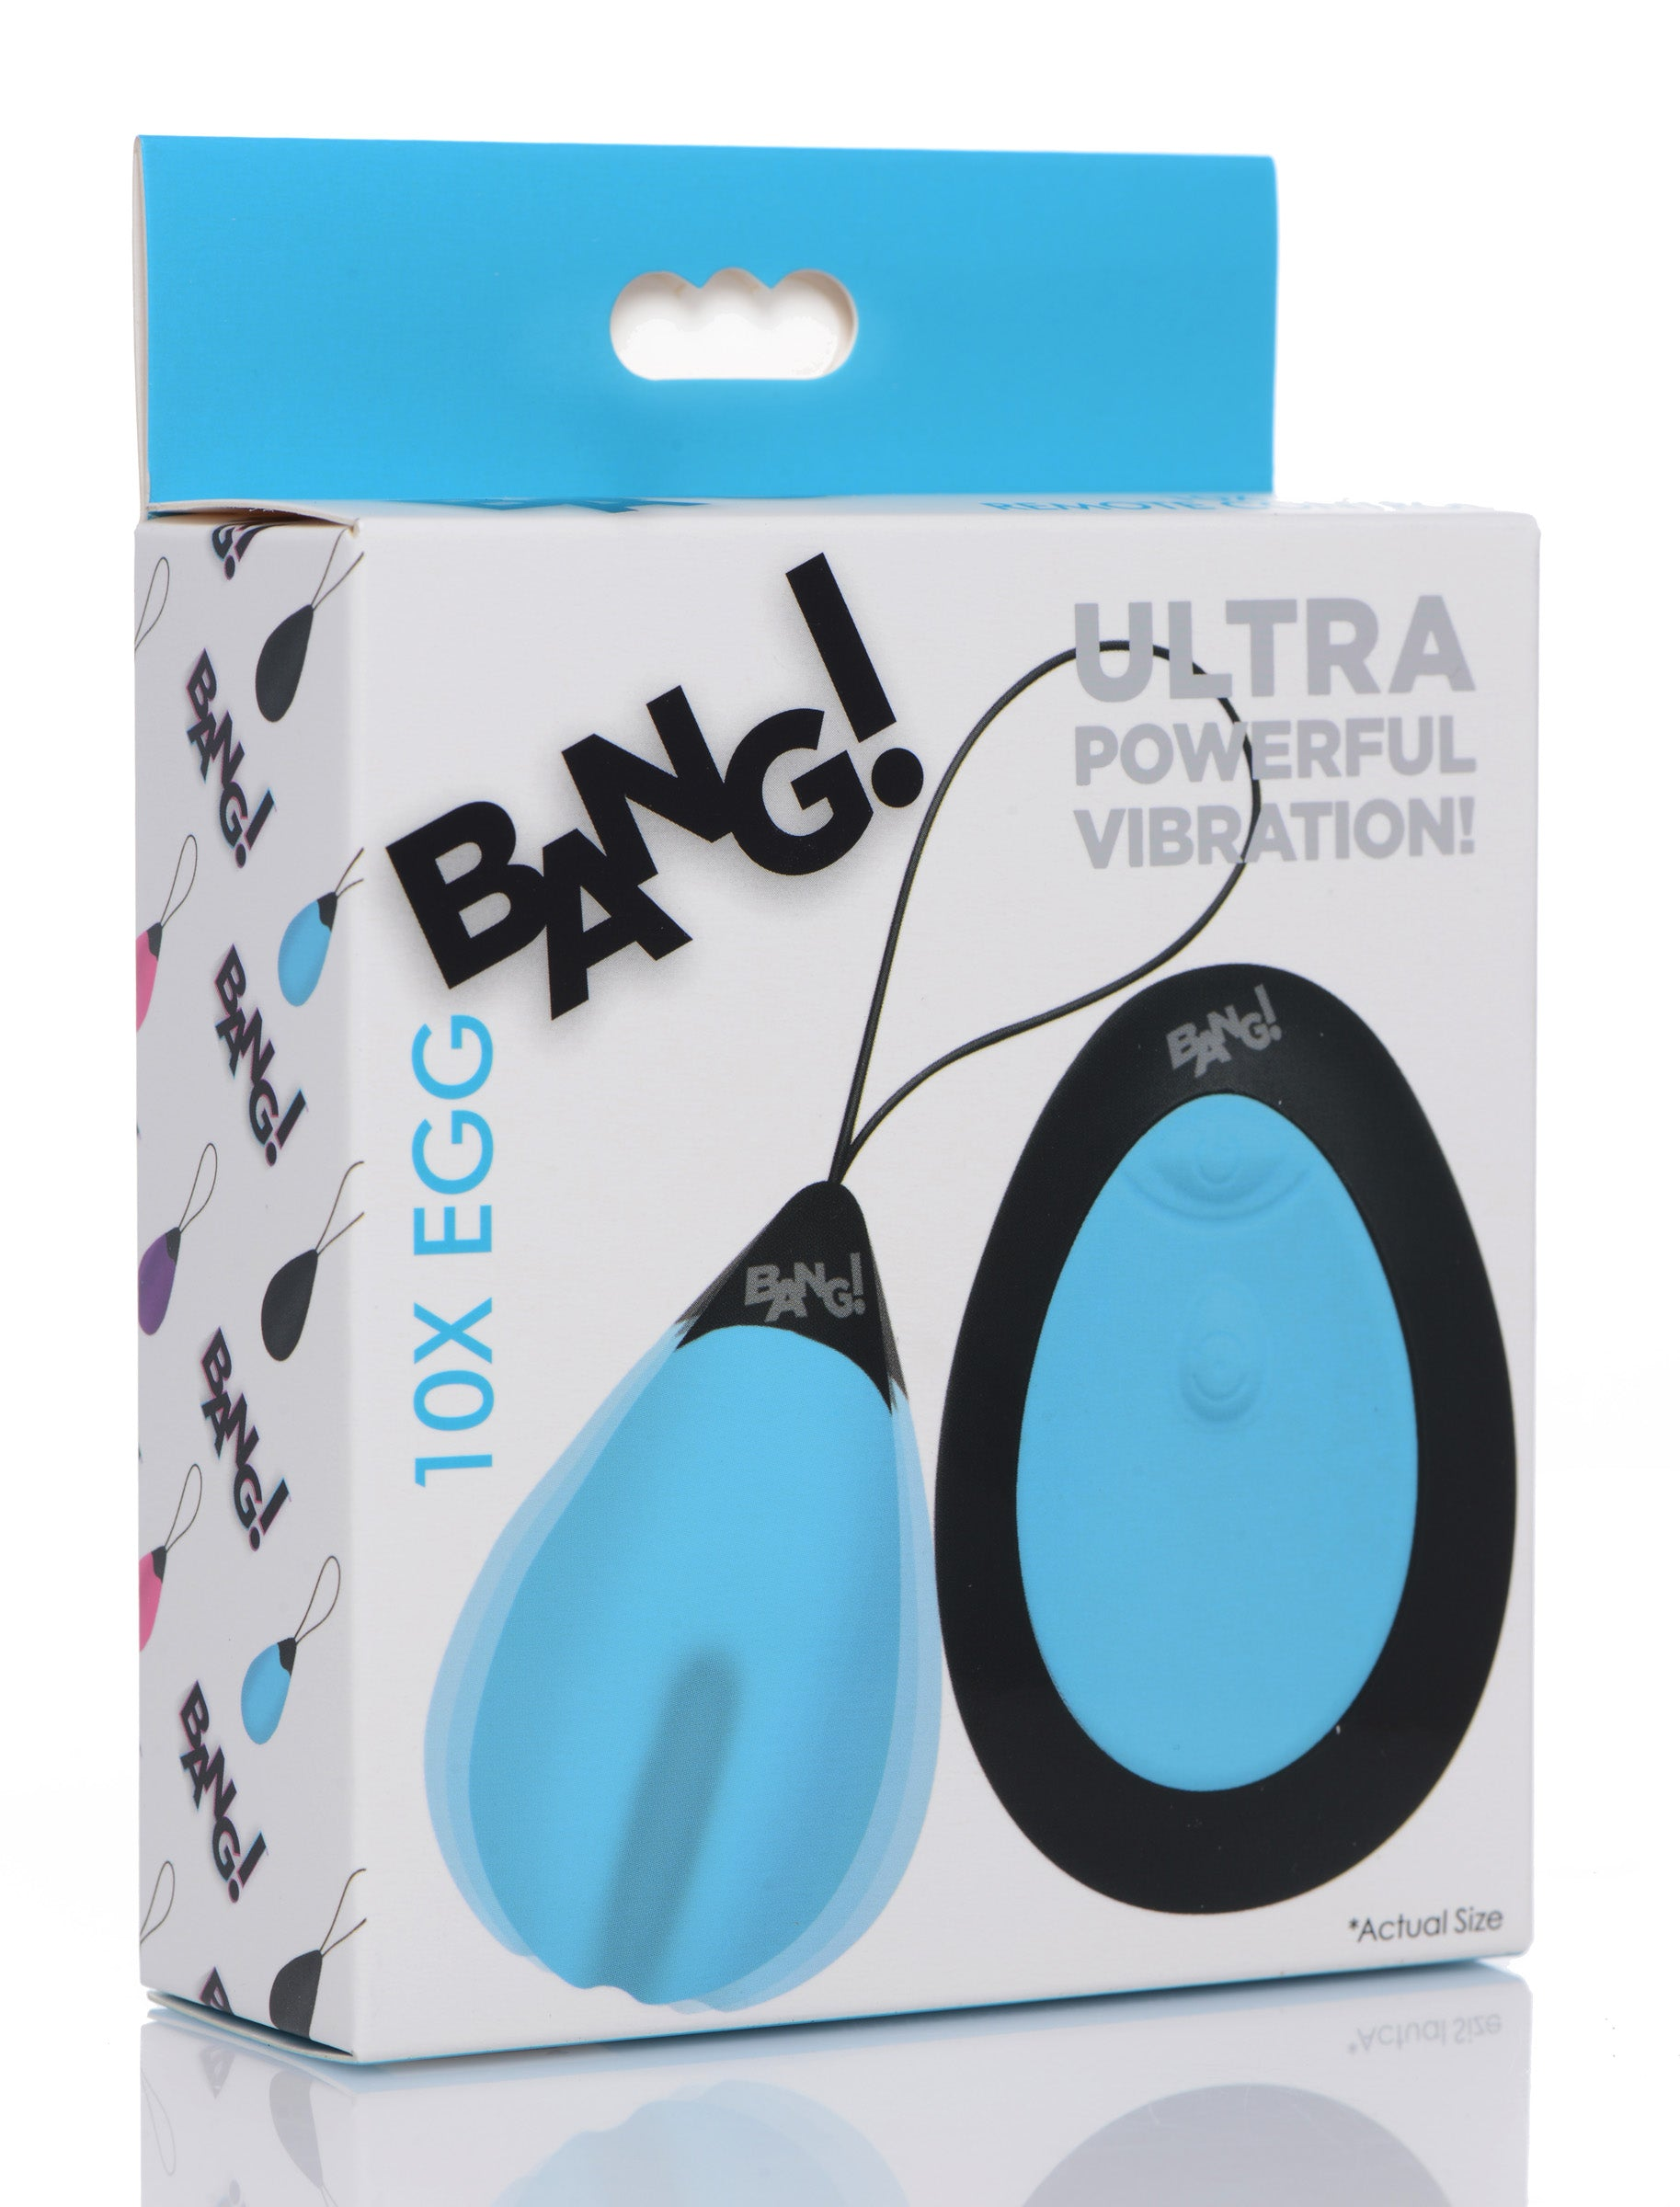 10x Silicone Vibrating Egg - Blue